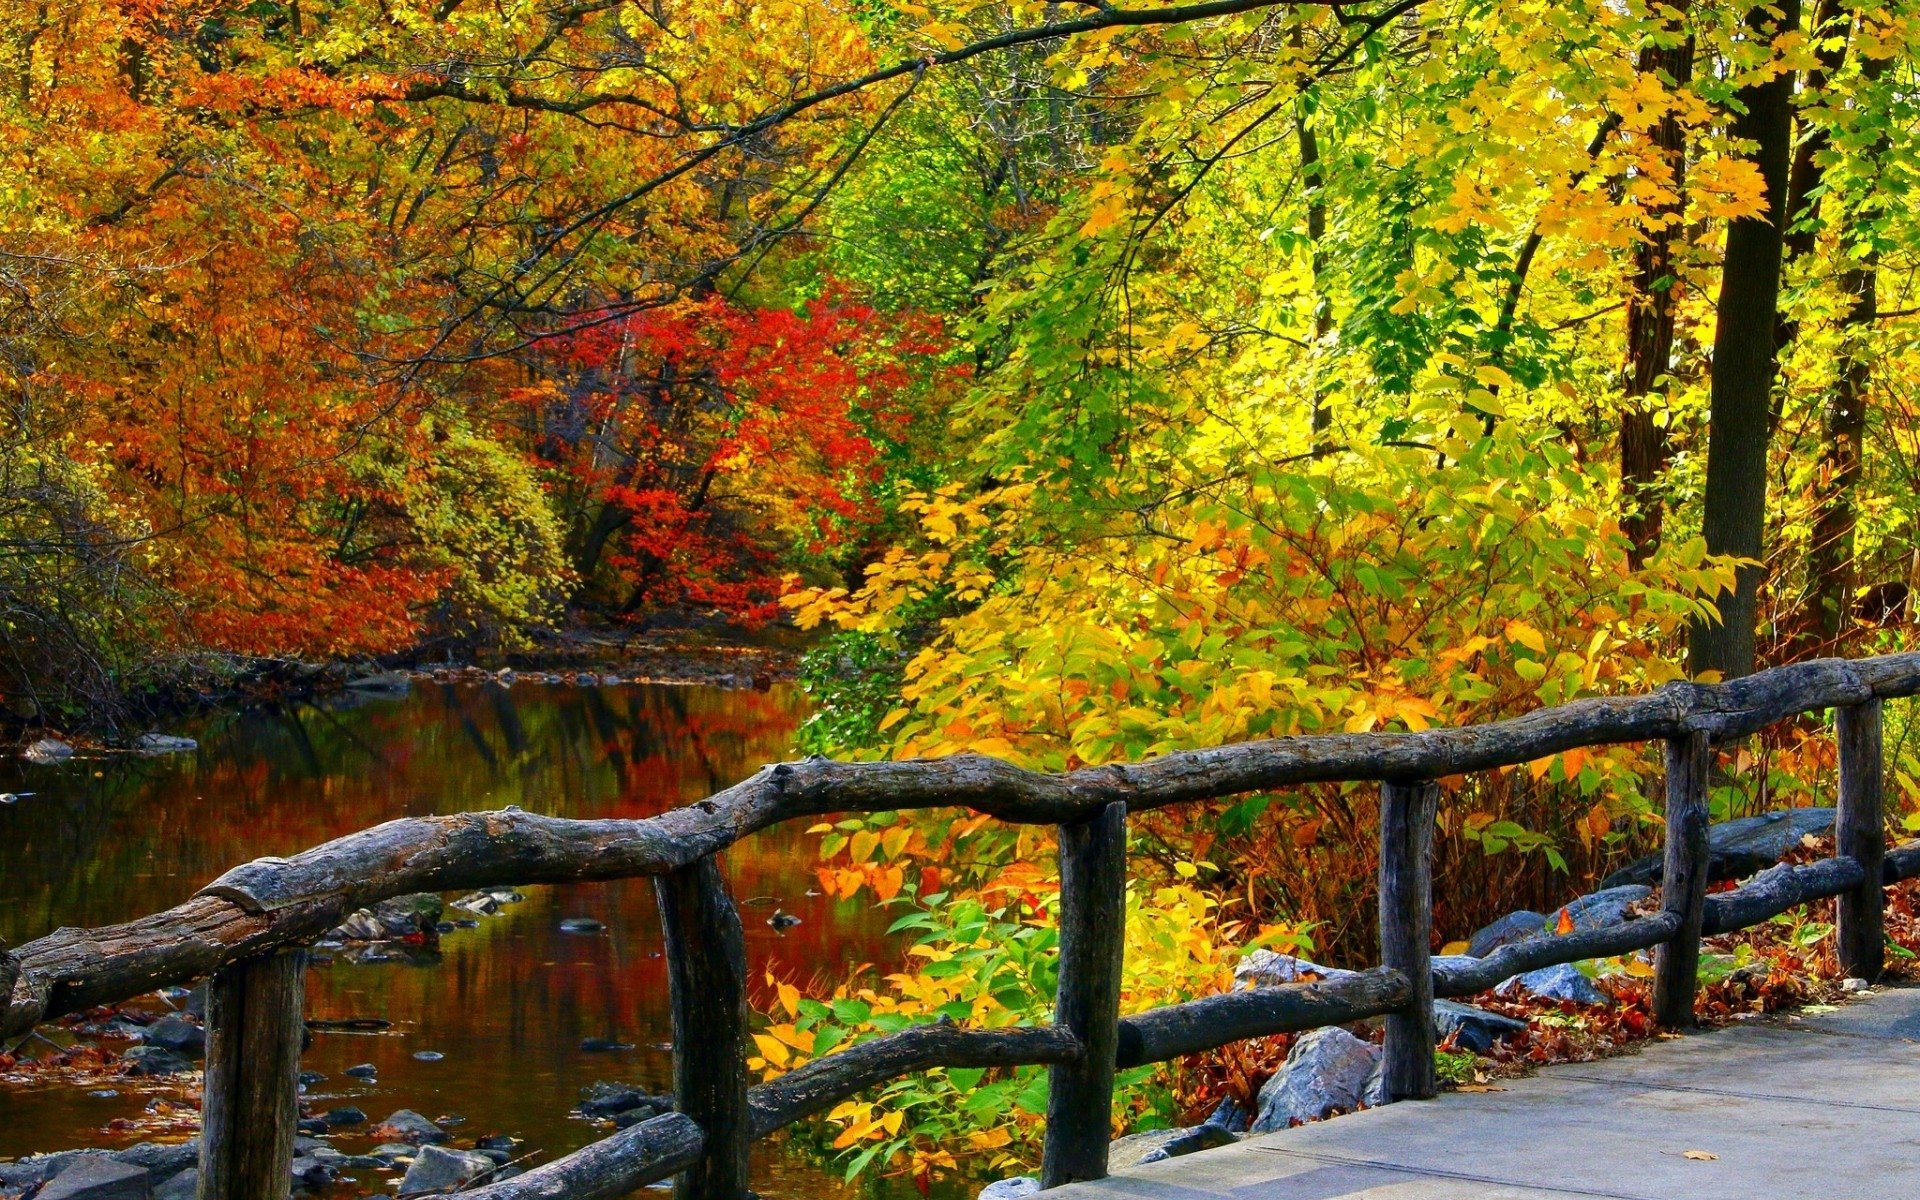 Fall Foliage Iphone Wallpaper Fence In Autumn Forest Hd Wallpaper Background Image